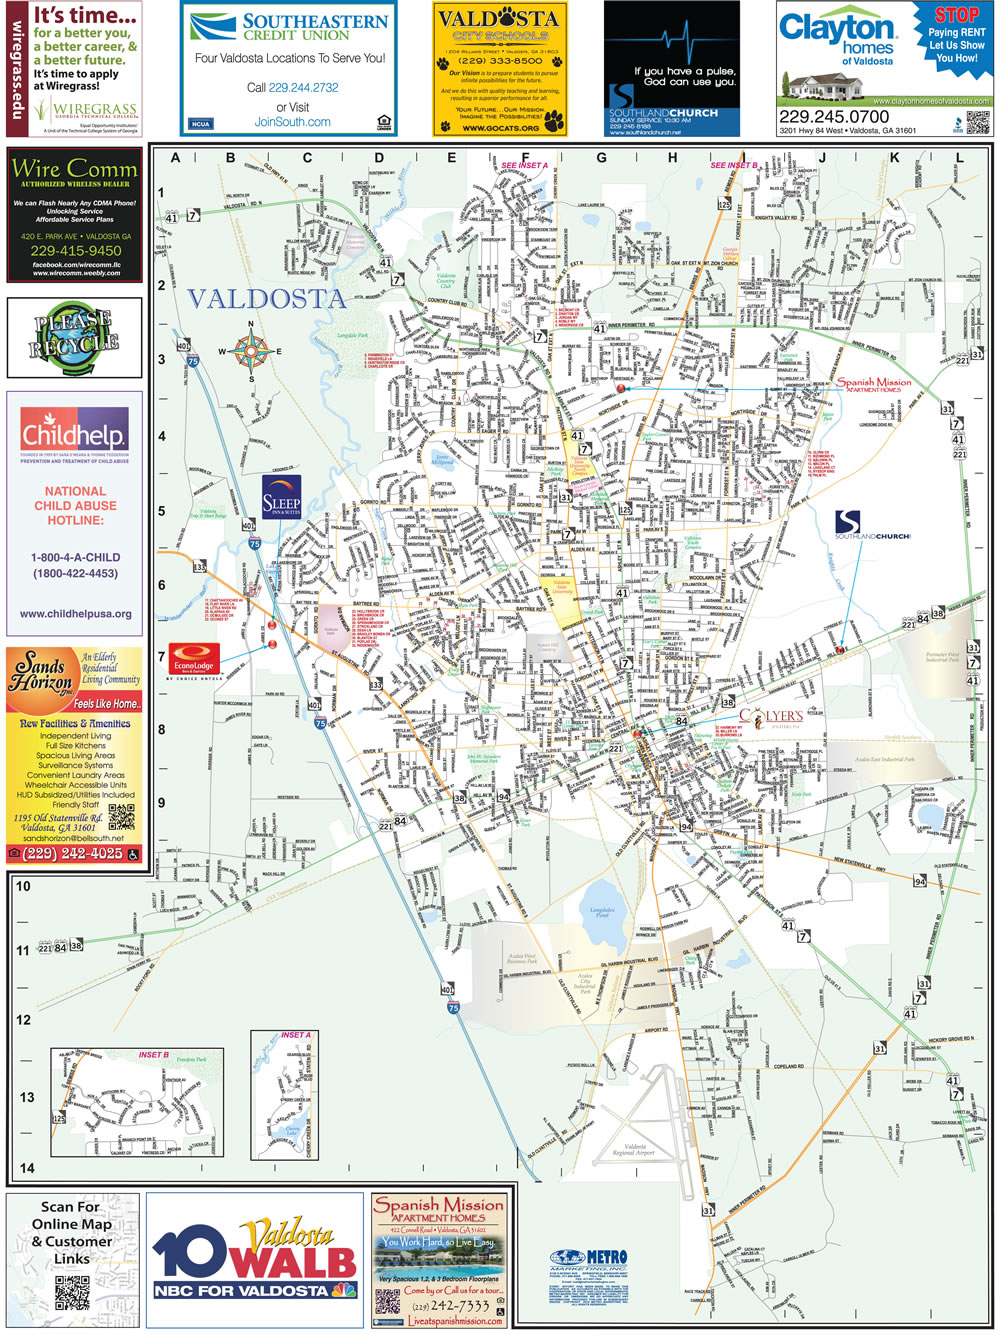 Valdosta Georgia With Lowndes County Overview City Street Map